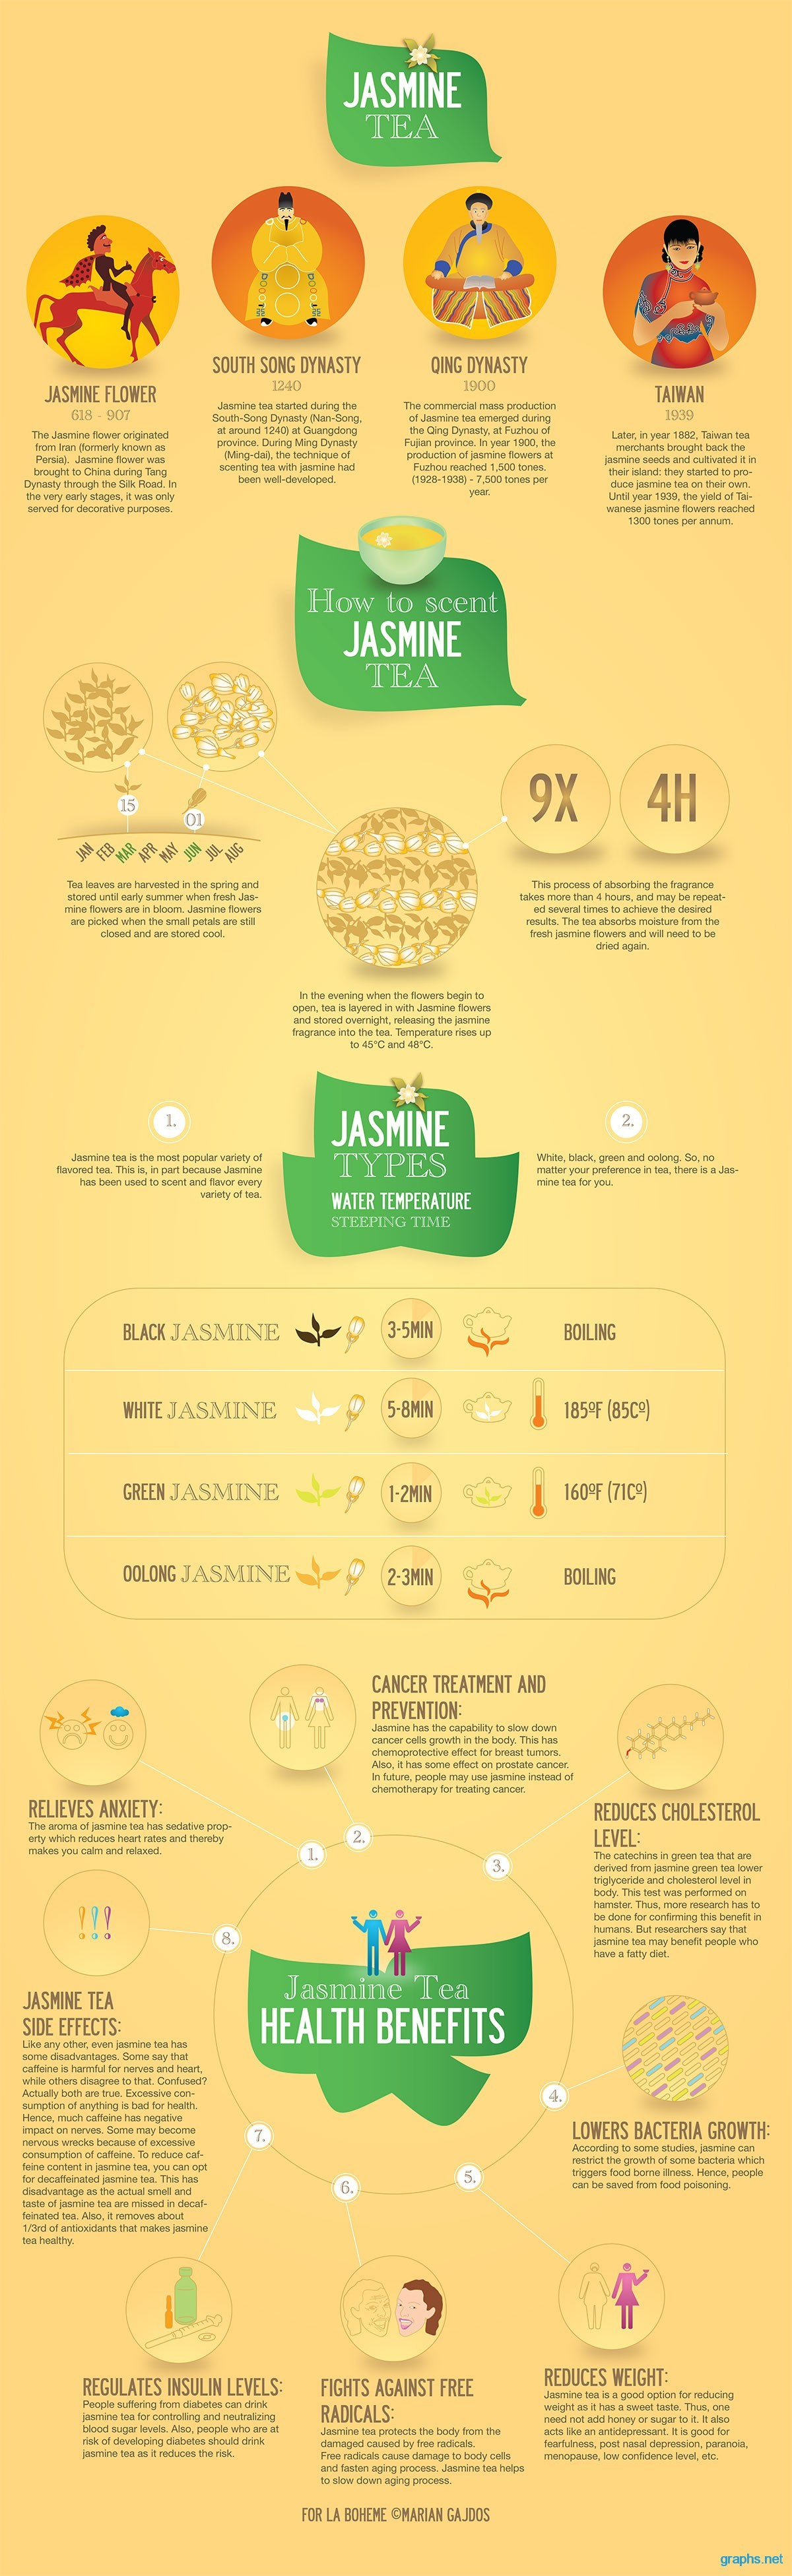 Facts About Jasmine Tea